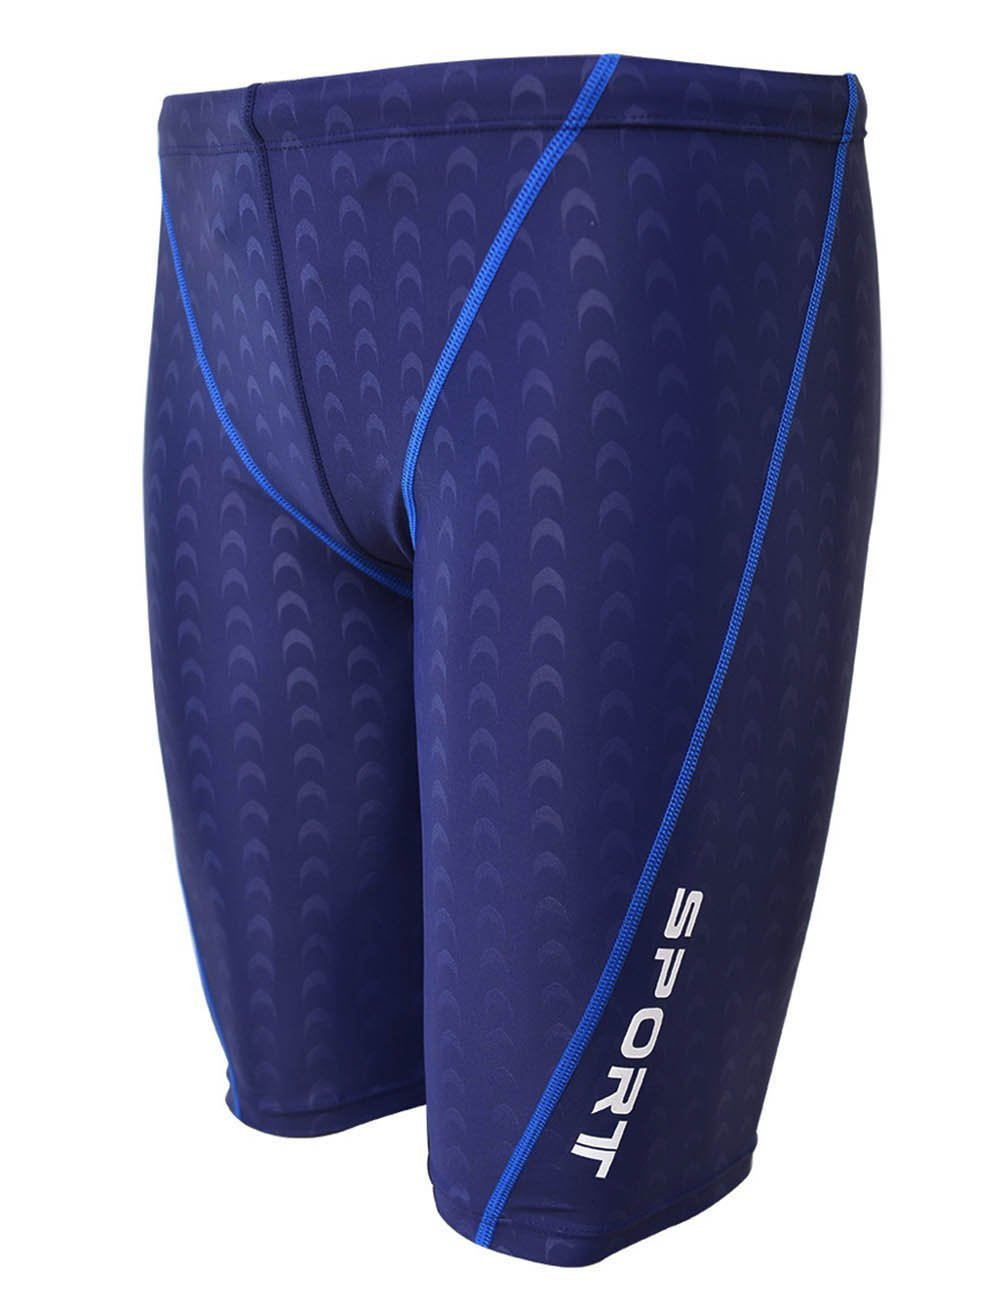 1f7efffaa4 Srnfean Men's Swimming Jammers Endurance+ Quick Dry Swimsuit product image